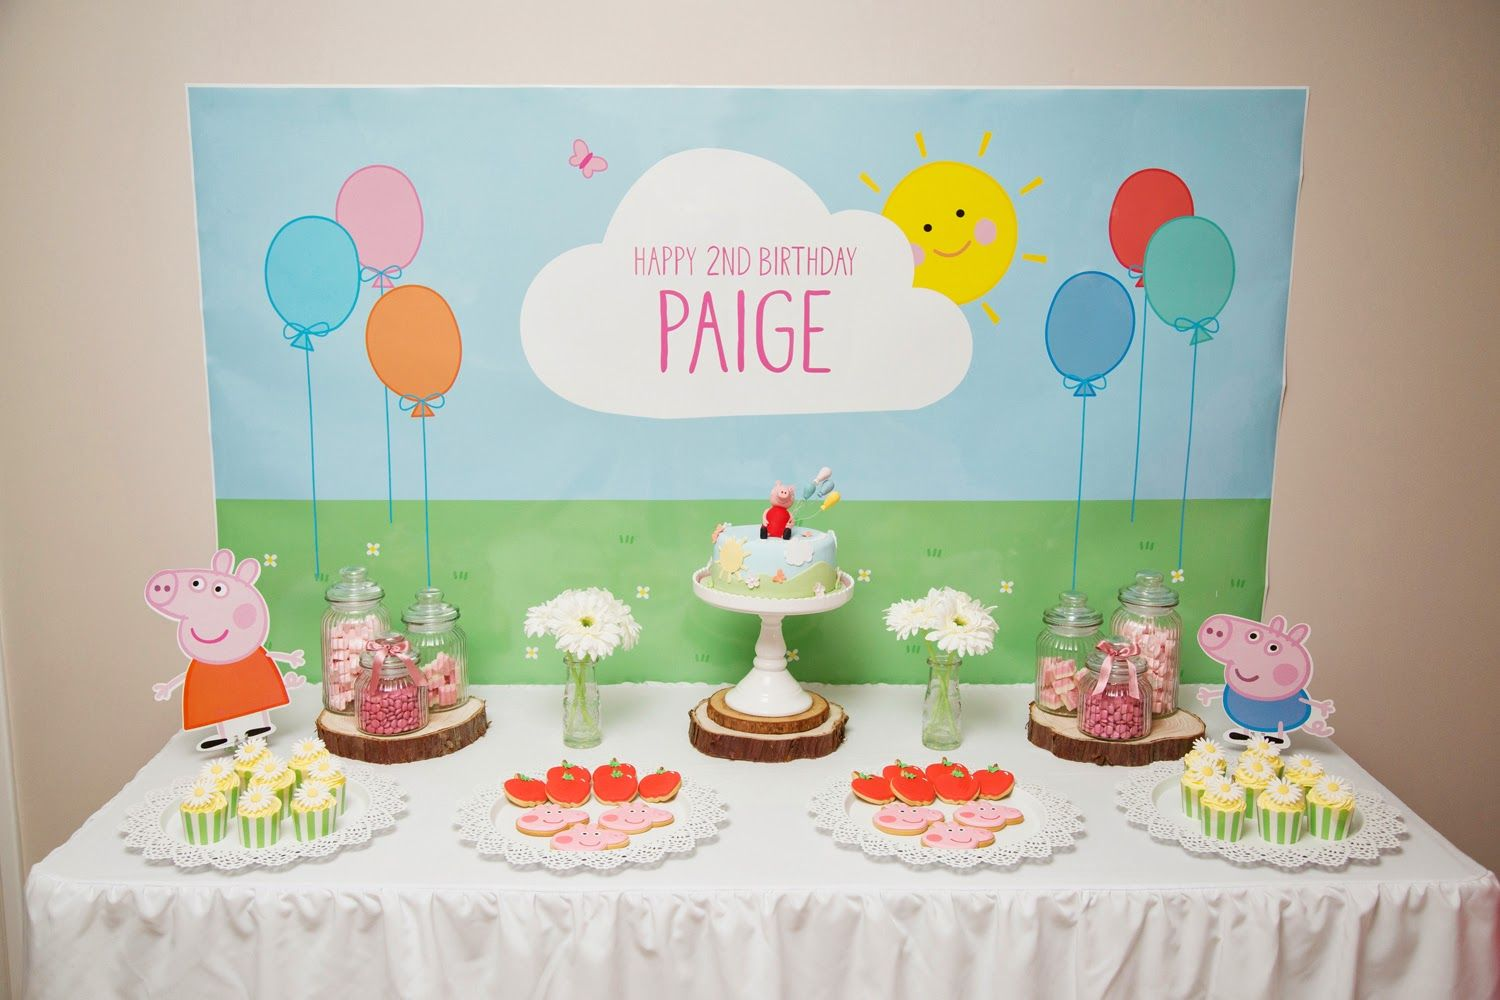 2nd birthday backdrop ; e453cd934d5b6c1ee819c93c1773a6b8